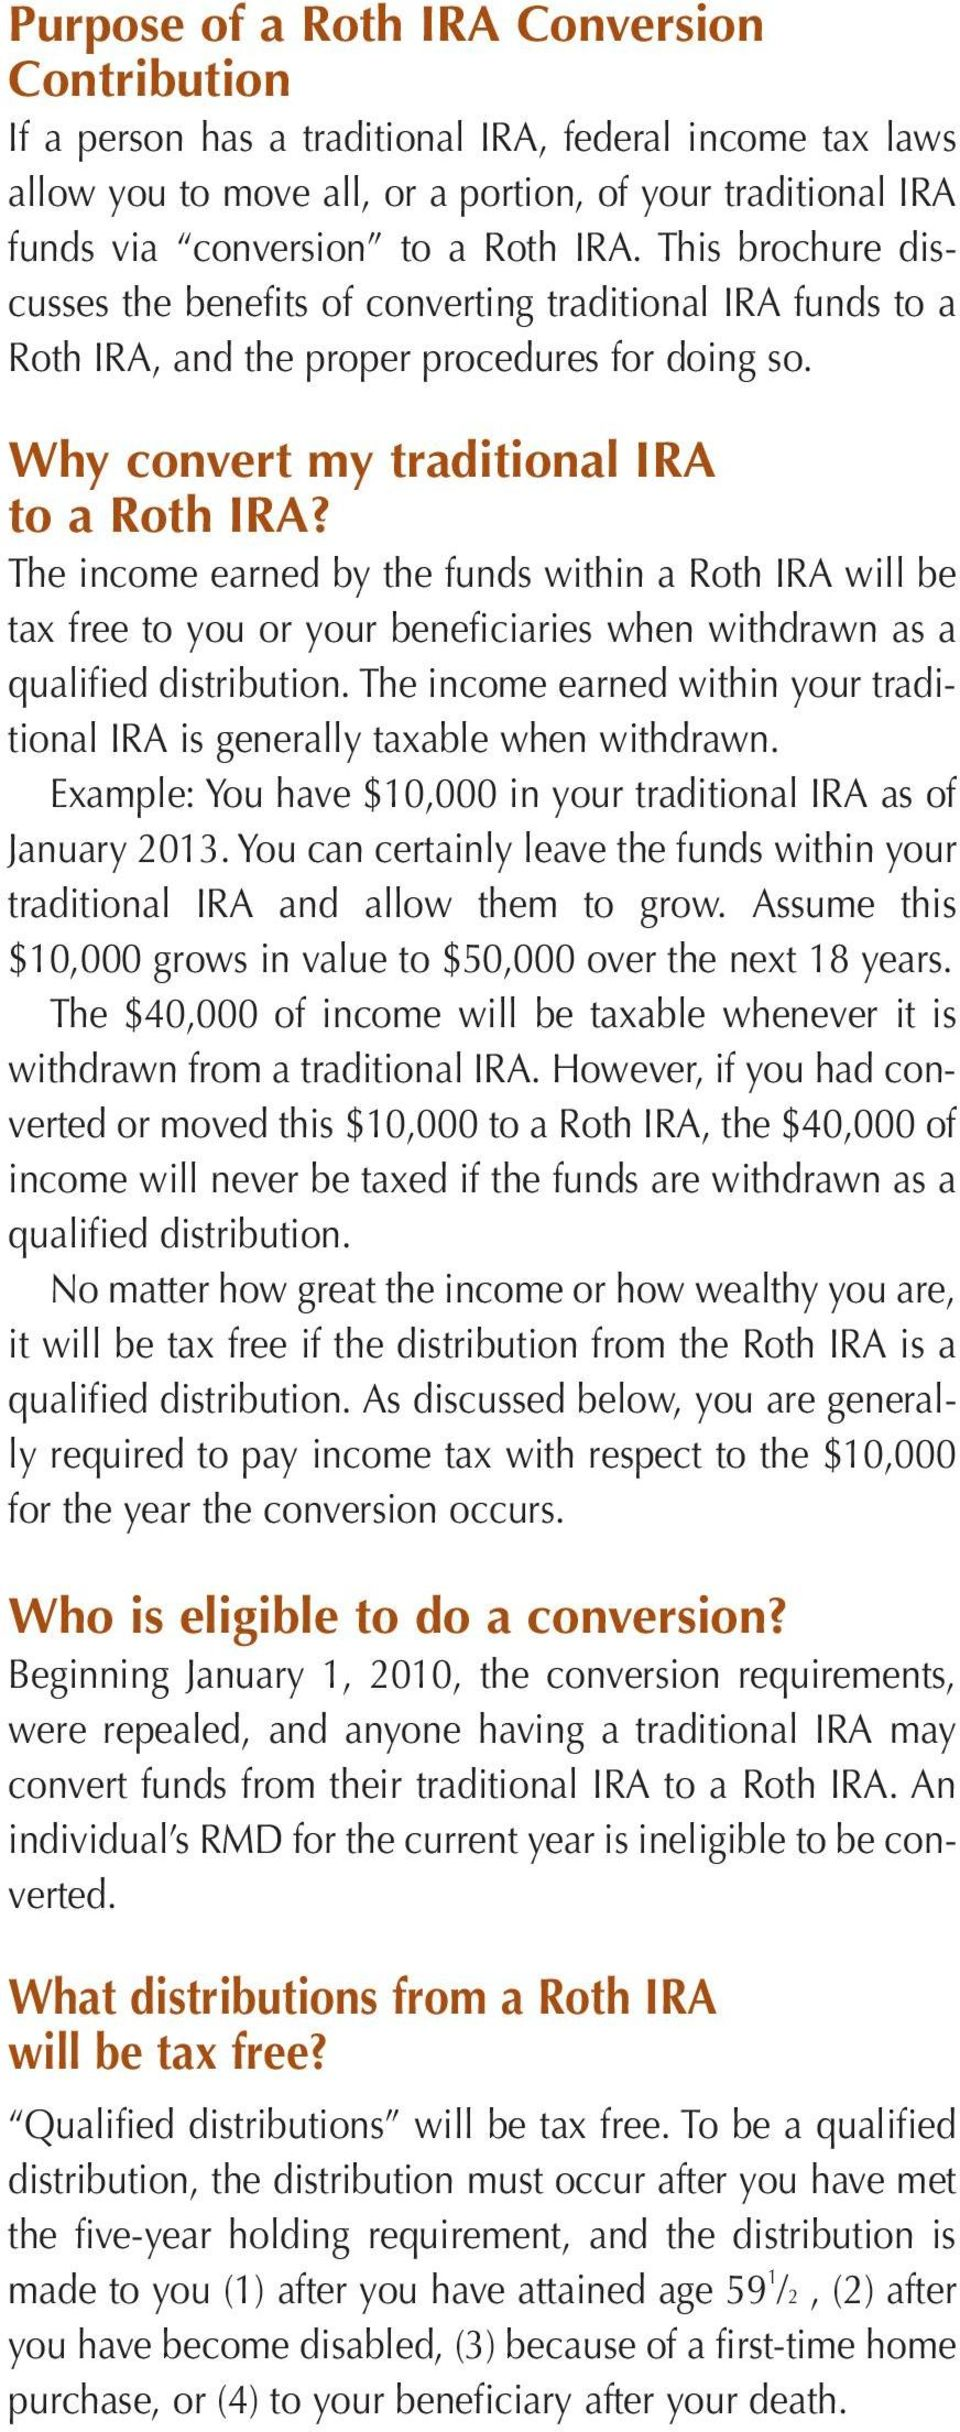 The income earned by the funds within a Roth IRA will be tax free to you or your beneficiaries when withdrawn as a qualified distribution.